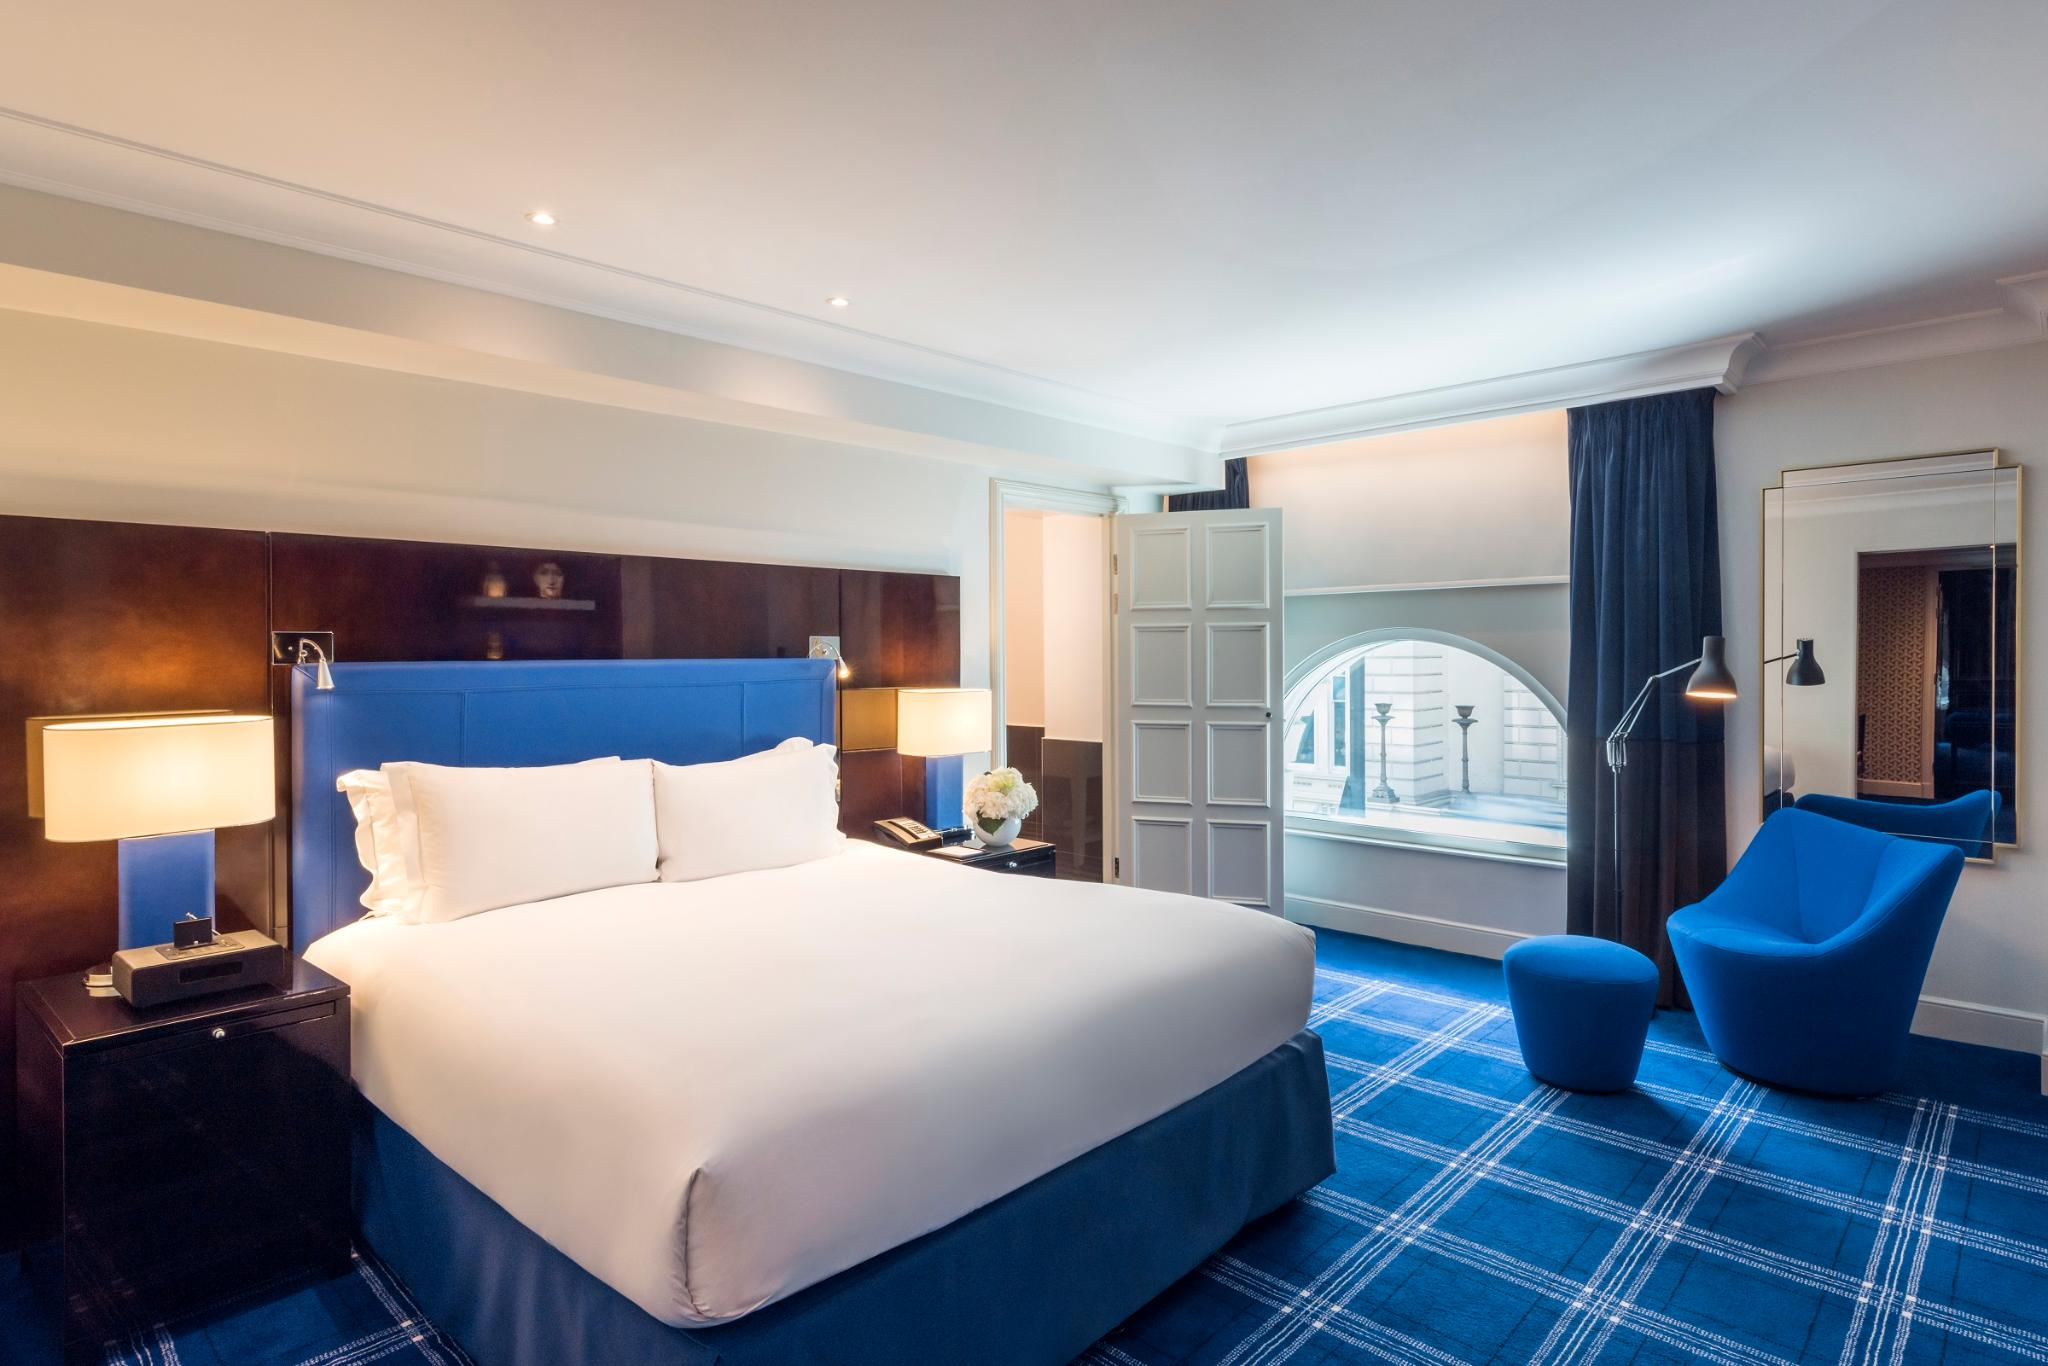 DOUBLE NEWLY DESIGNED PREMIUM LUXURY ROOM, 1 KING BED, VIEW OVER WATERLOO PLACE OR PALL MALL